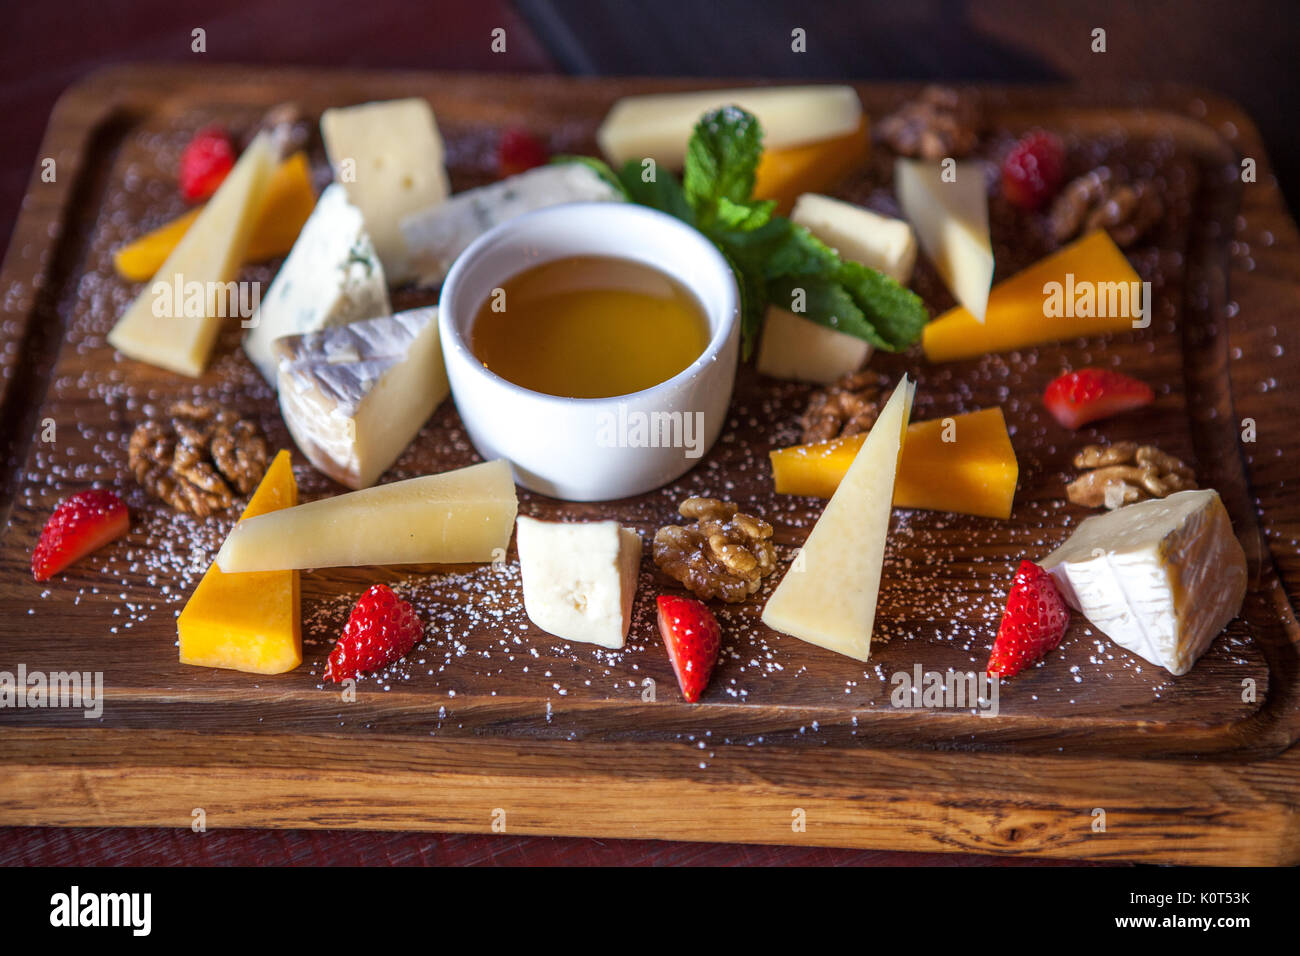 various cheeses with nuts and berries on a wooden Board - Stock Image